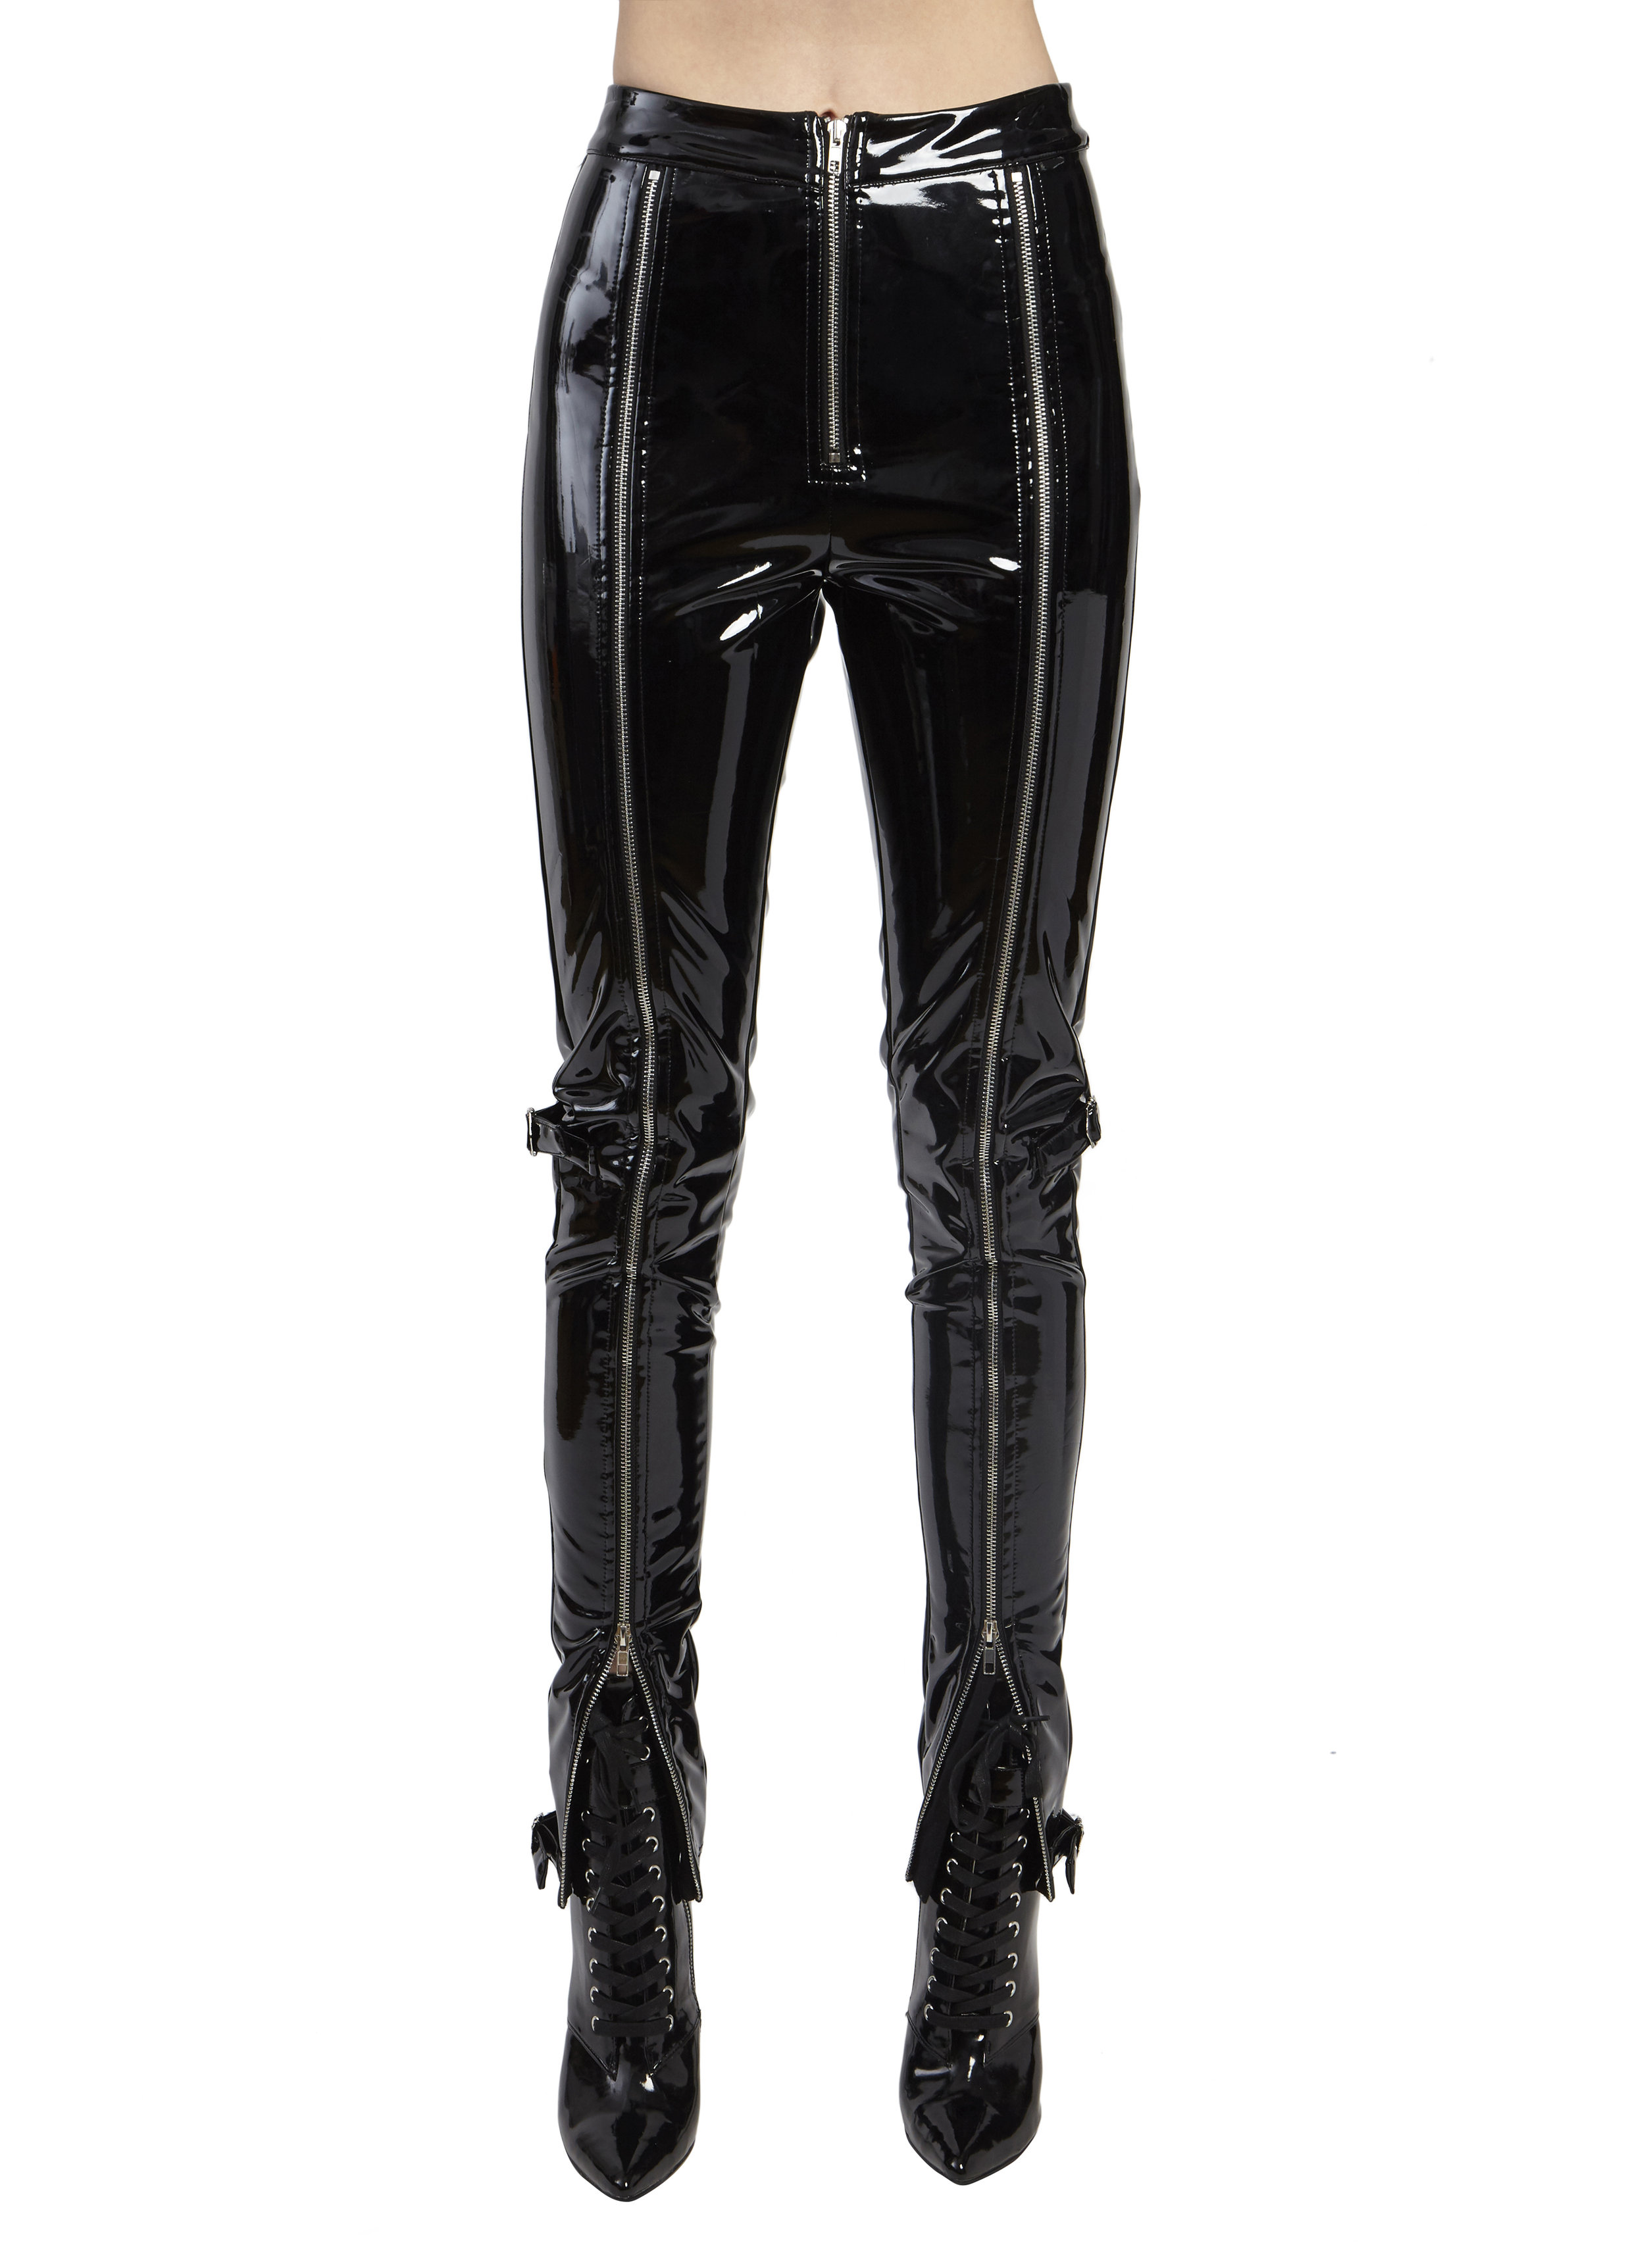 PATENT ZIPPER LEATHER PANTS by Danielle Guizio, available on danielleguiziony.com for $210 Kylie Jenner Pants SIMILAR PRODUCT